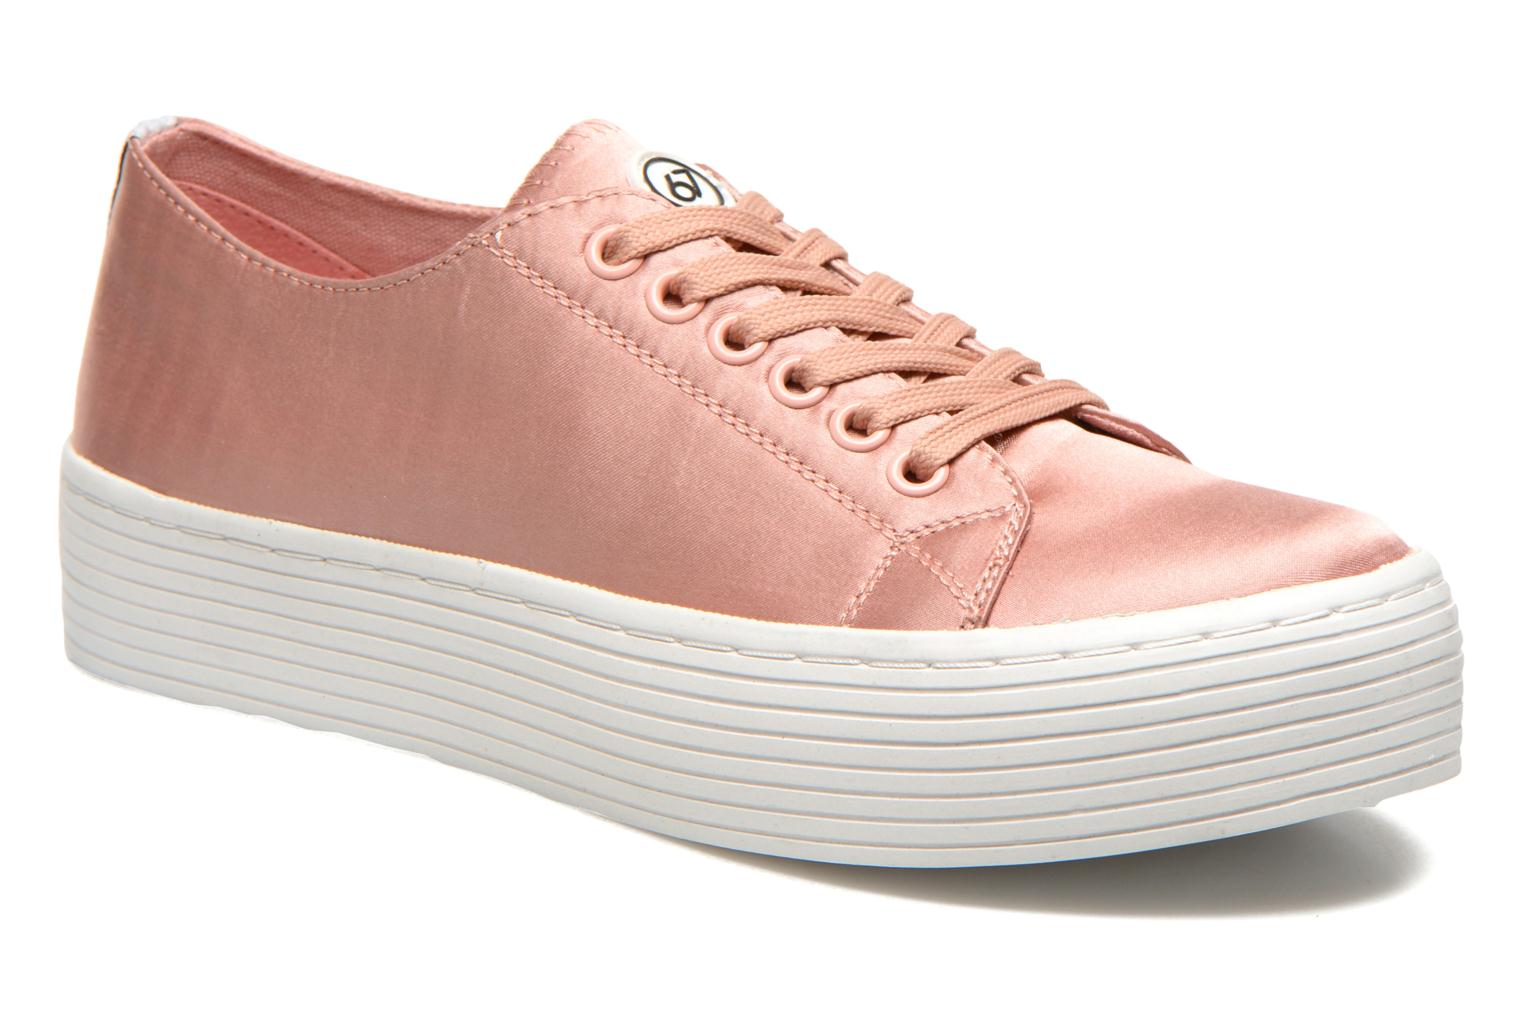 Femme Chaussures Roses Sixty Plomberie Uvpszm Bookcase Flwoha Seven roxBWdCe